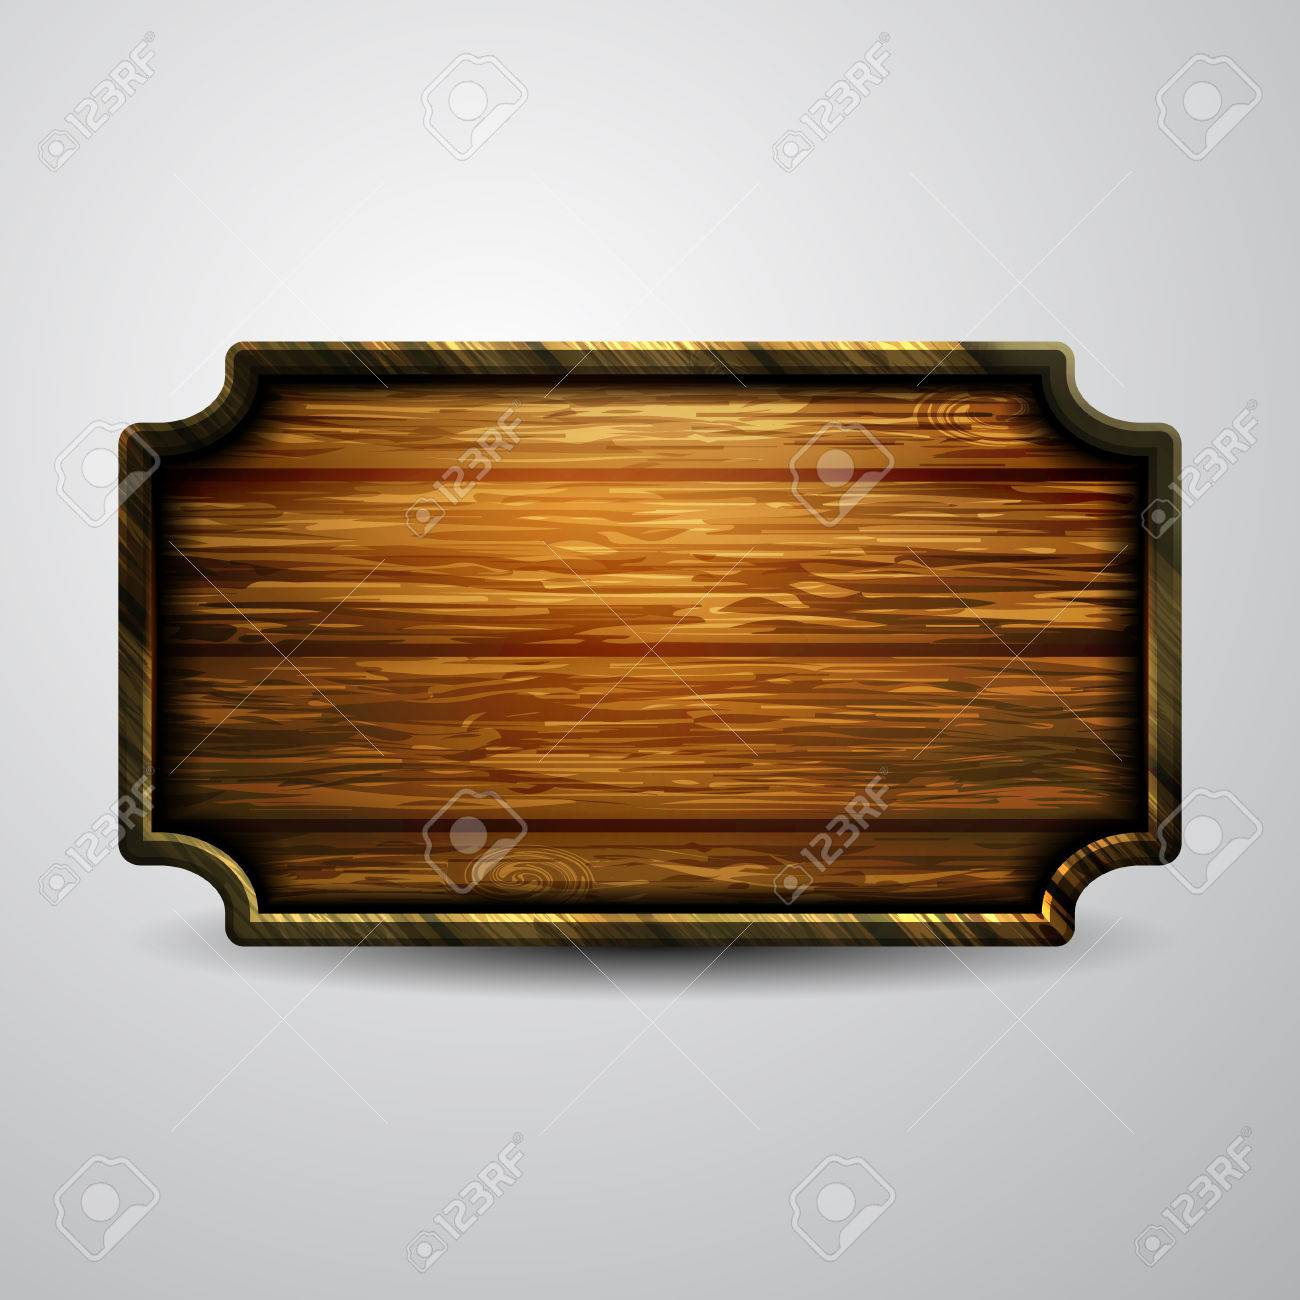 Vector realistic illustration of wooden signboard - 71759488